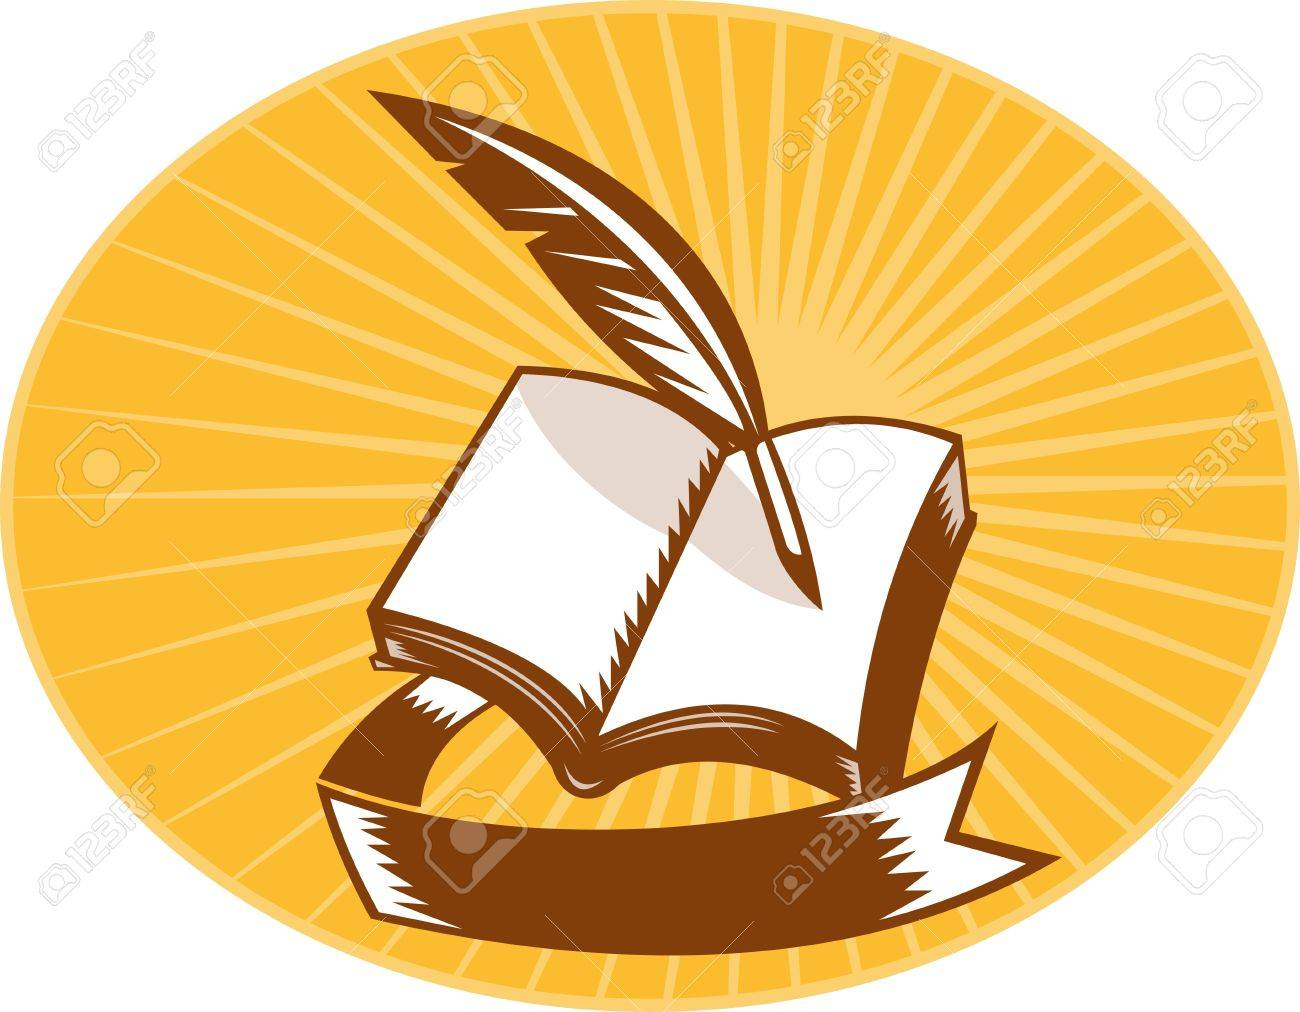 illustration of a book with quill pen and scroll set inside an oval with sunburst in background done in woodcut style. Stock Illustration - 10561278